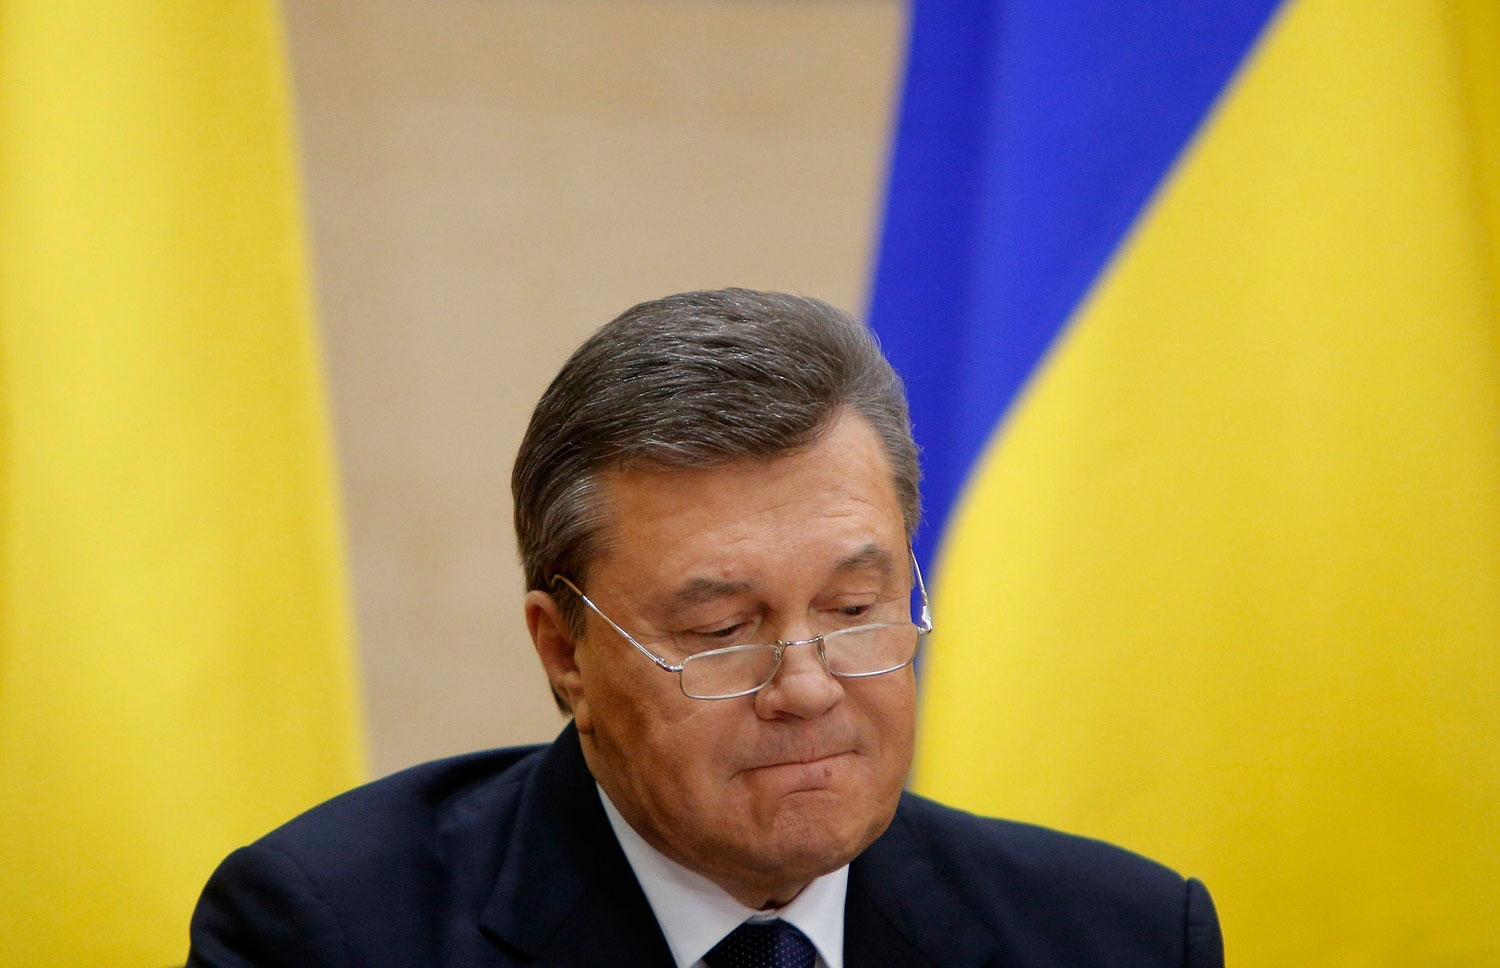 Ousted Ukrainian President Viktor Yanukovich takes part in a news conference in the southern Russian city of Rostov-on-Don, Feb. 28, 2014.